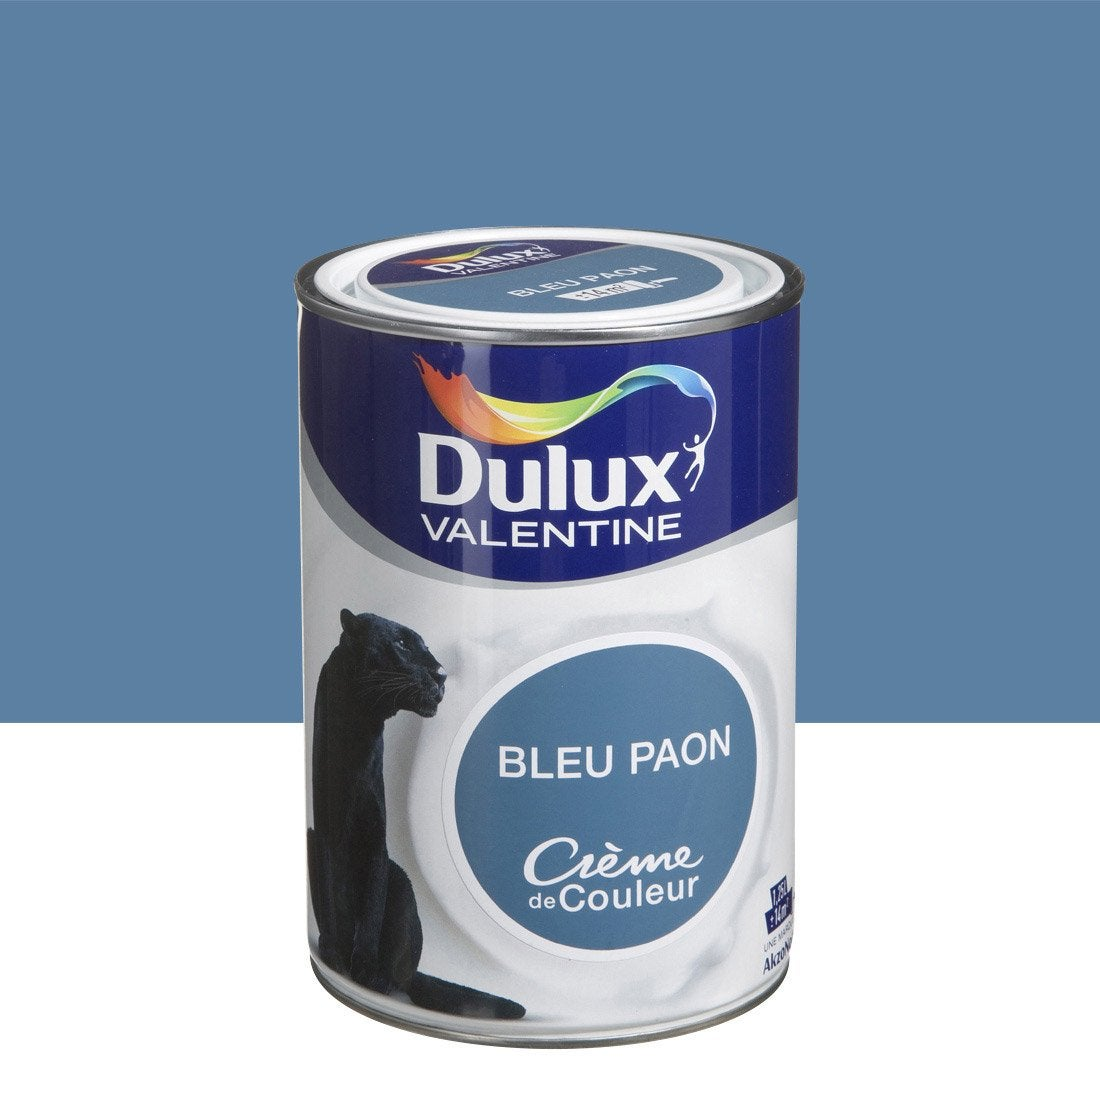 peinture bleu paon dulux valentine cr me de couleur l. Black Bedroom Furniture Sets. Home Design Ideas